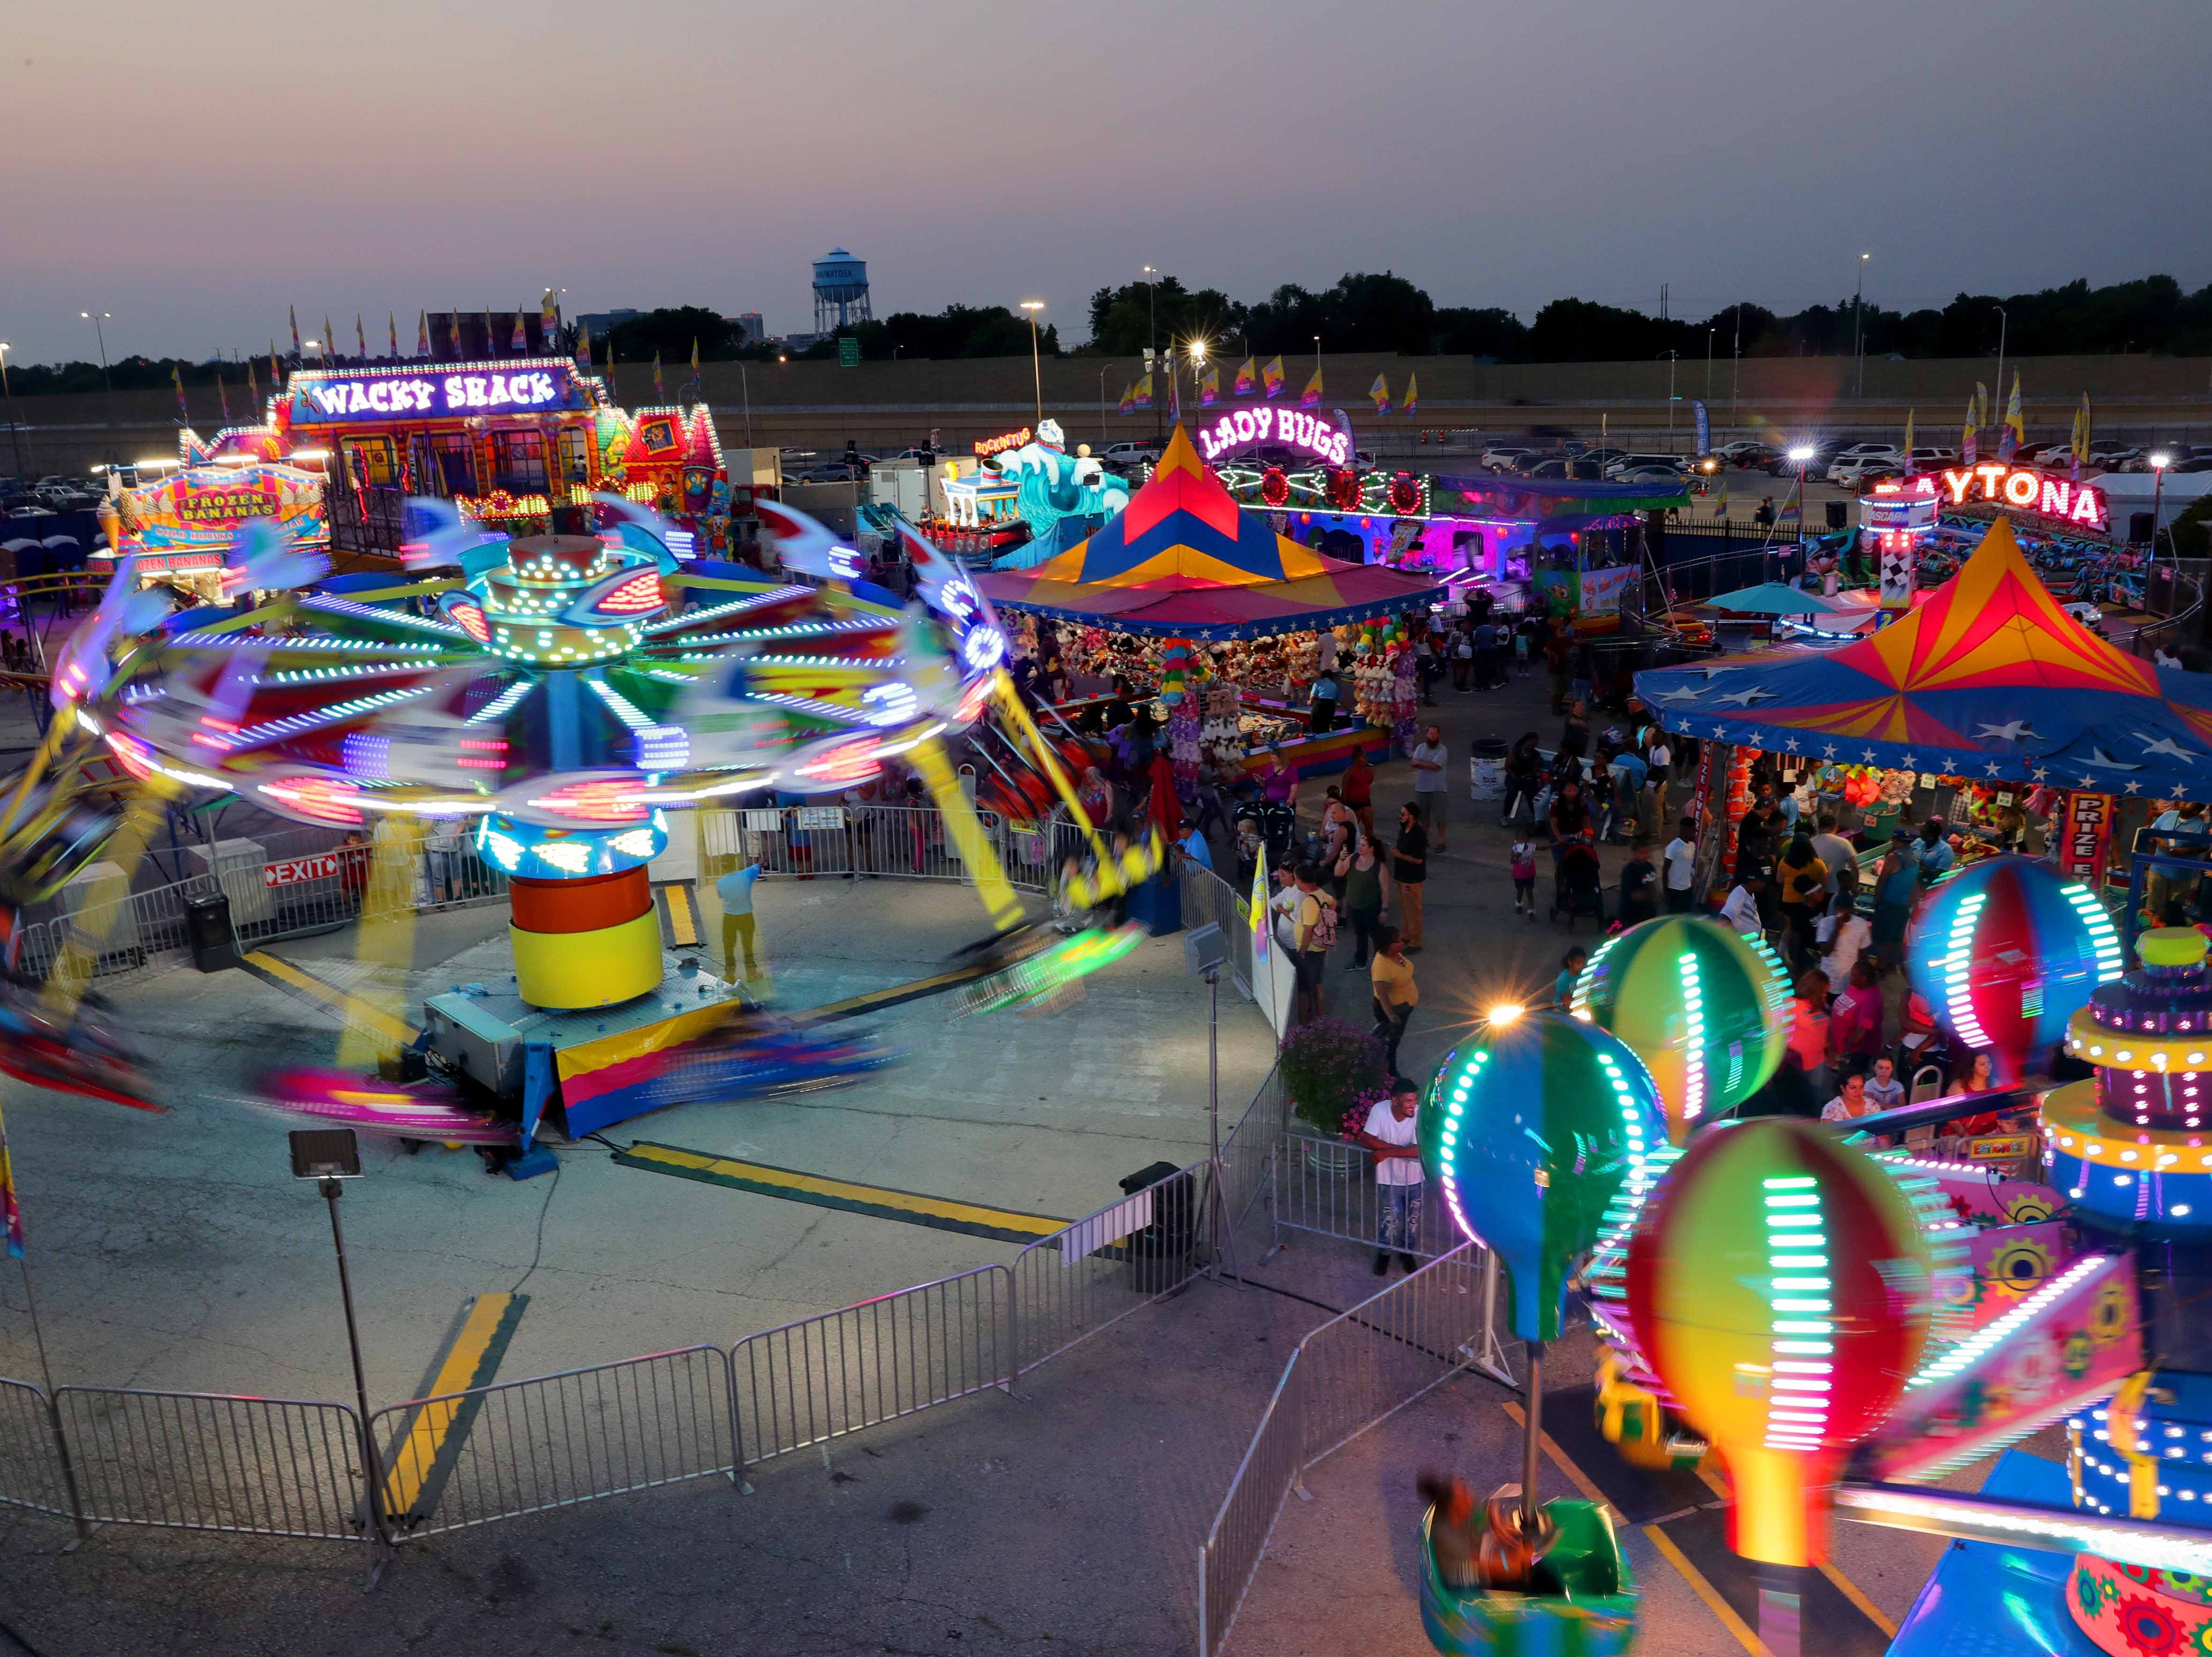 Fairgoers enjoy the rides in SpinCity on the final night of the Wisconsin State Fair Sunday, Aug. 12, 2018.